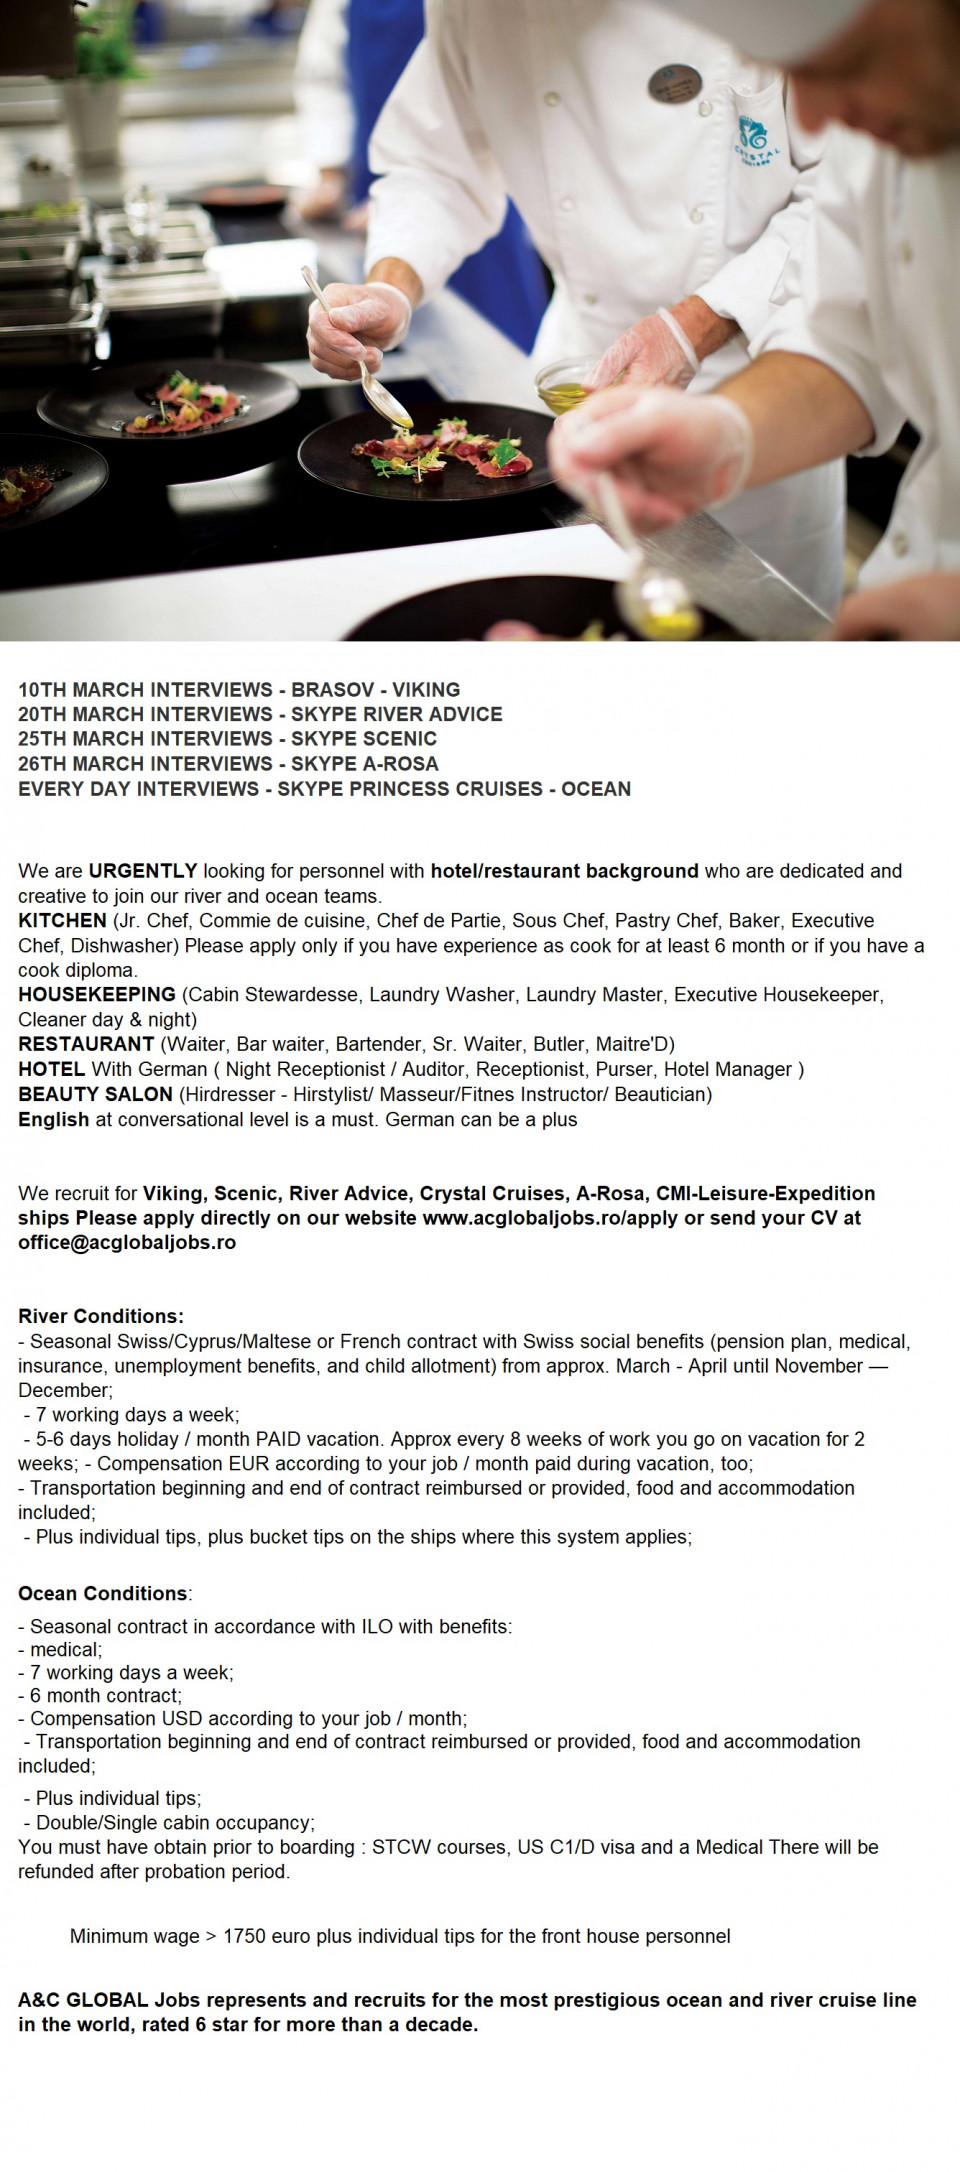 10TH MARCH INTERVIEWS - BRASOV - VIKING